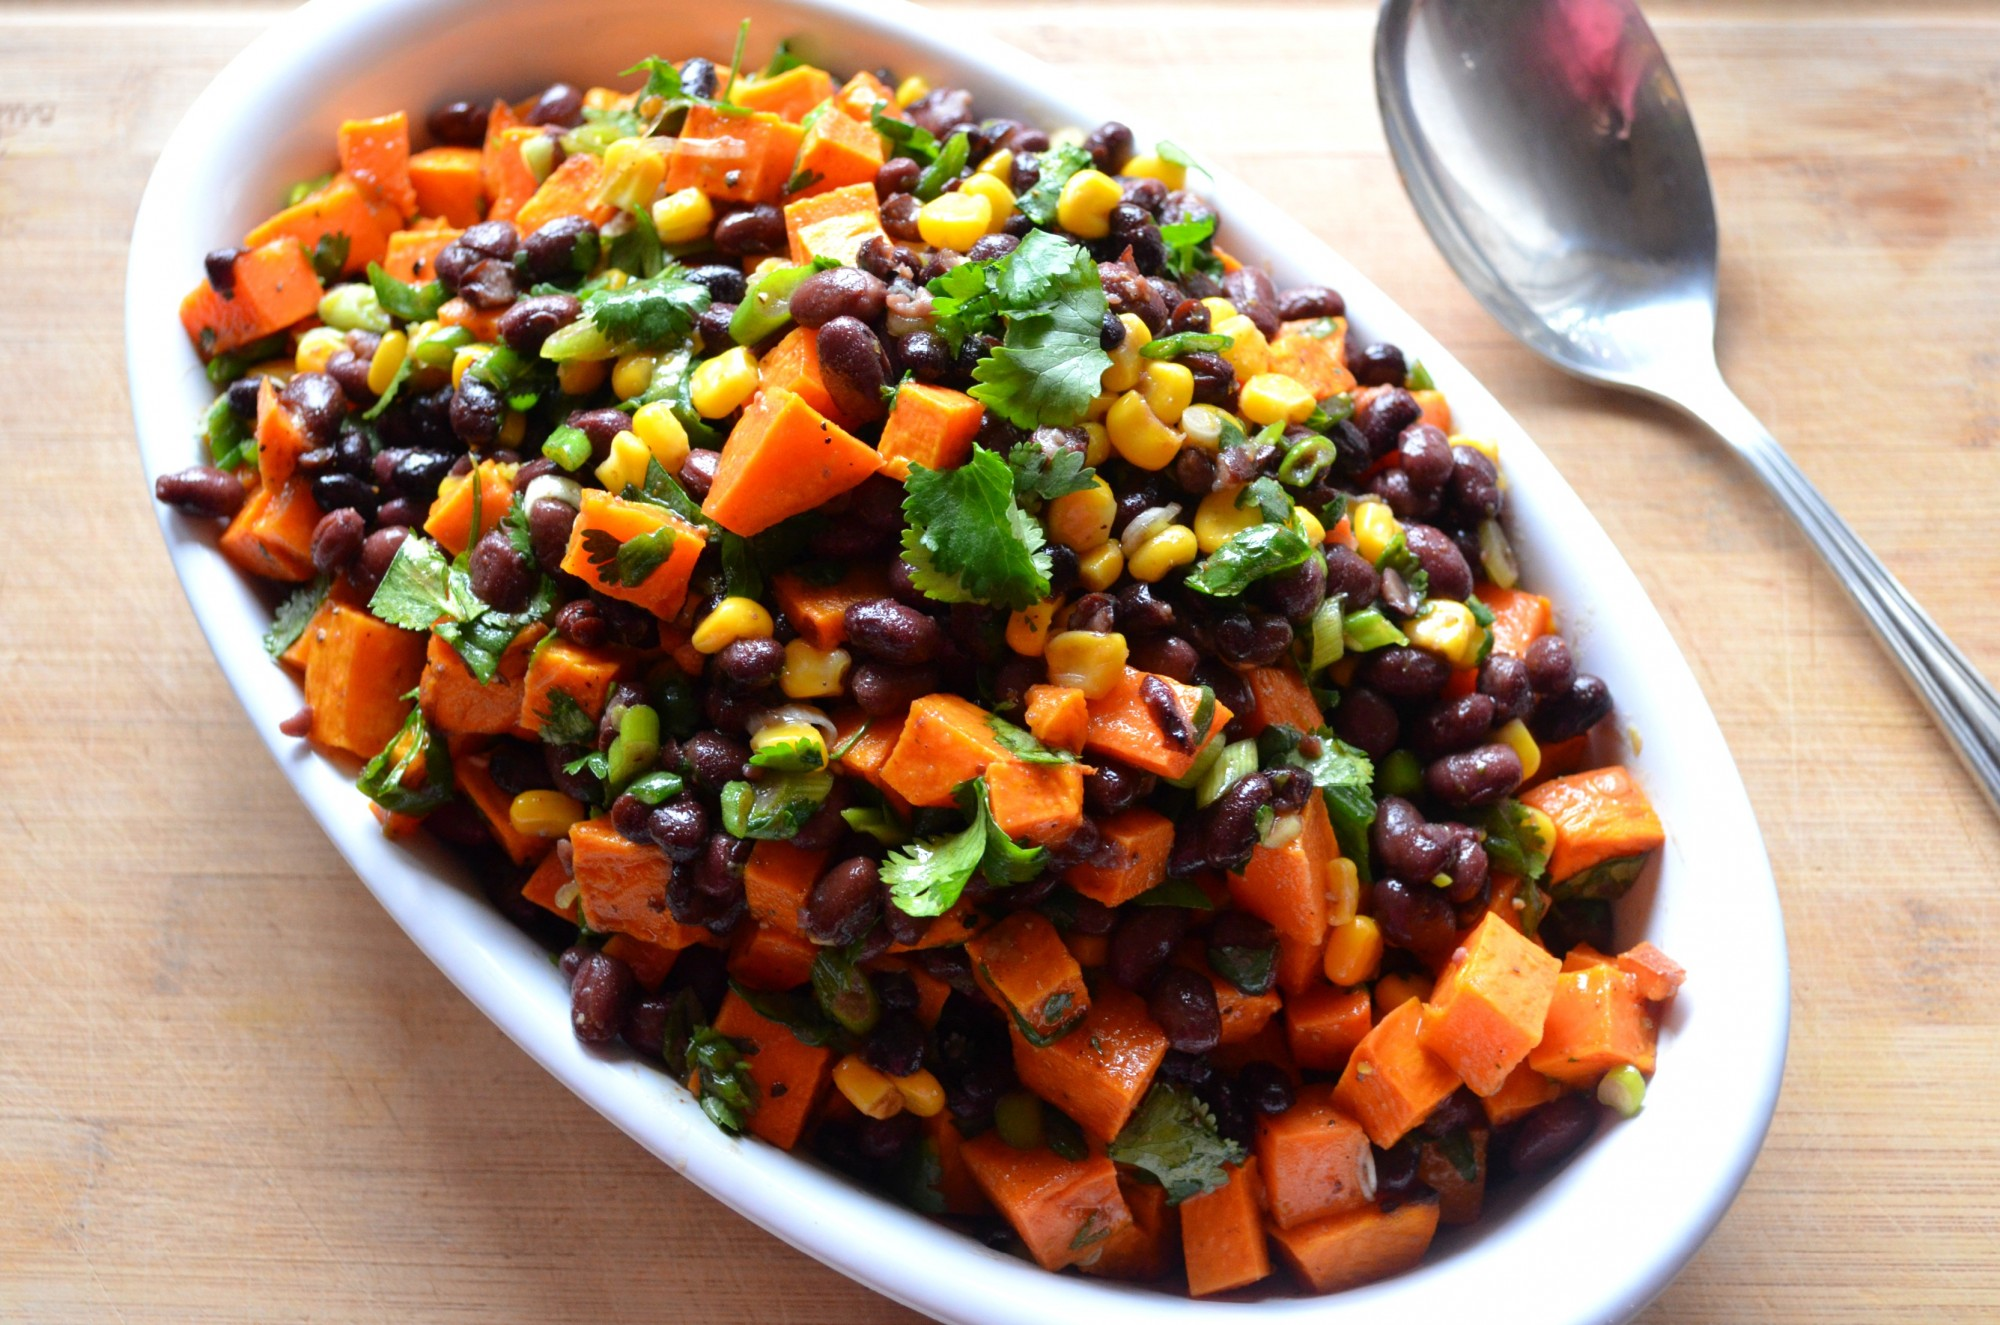 Black beans, sweet potatoes, lime vinaigrette